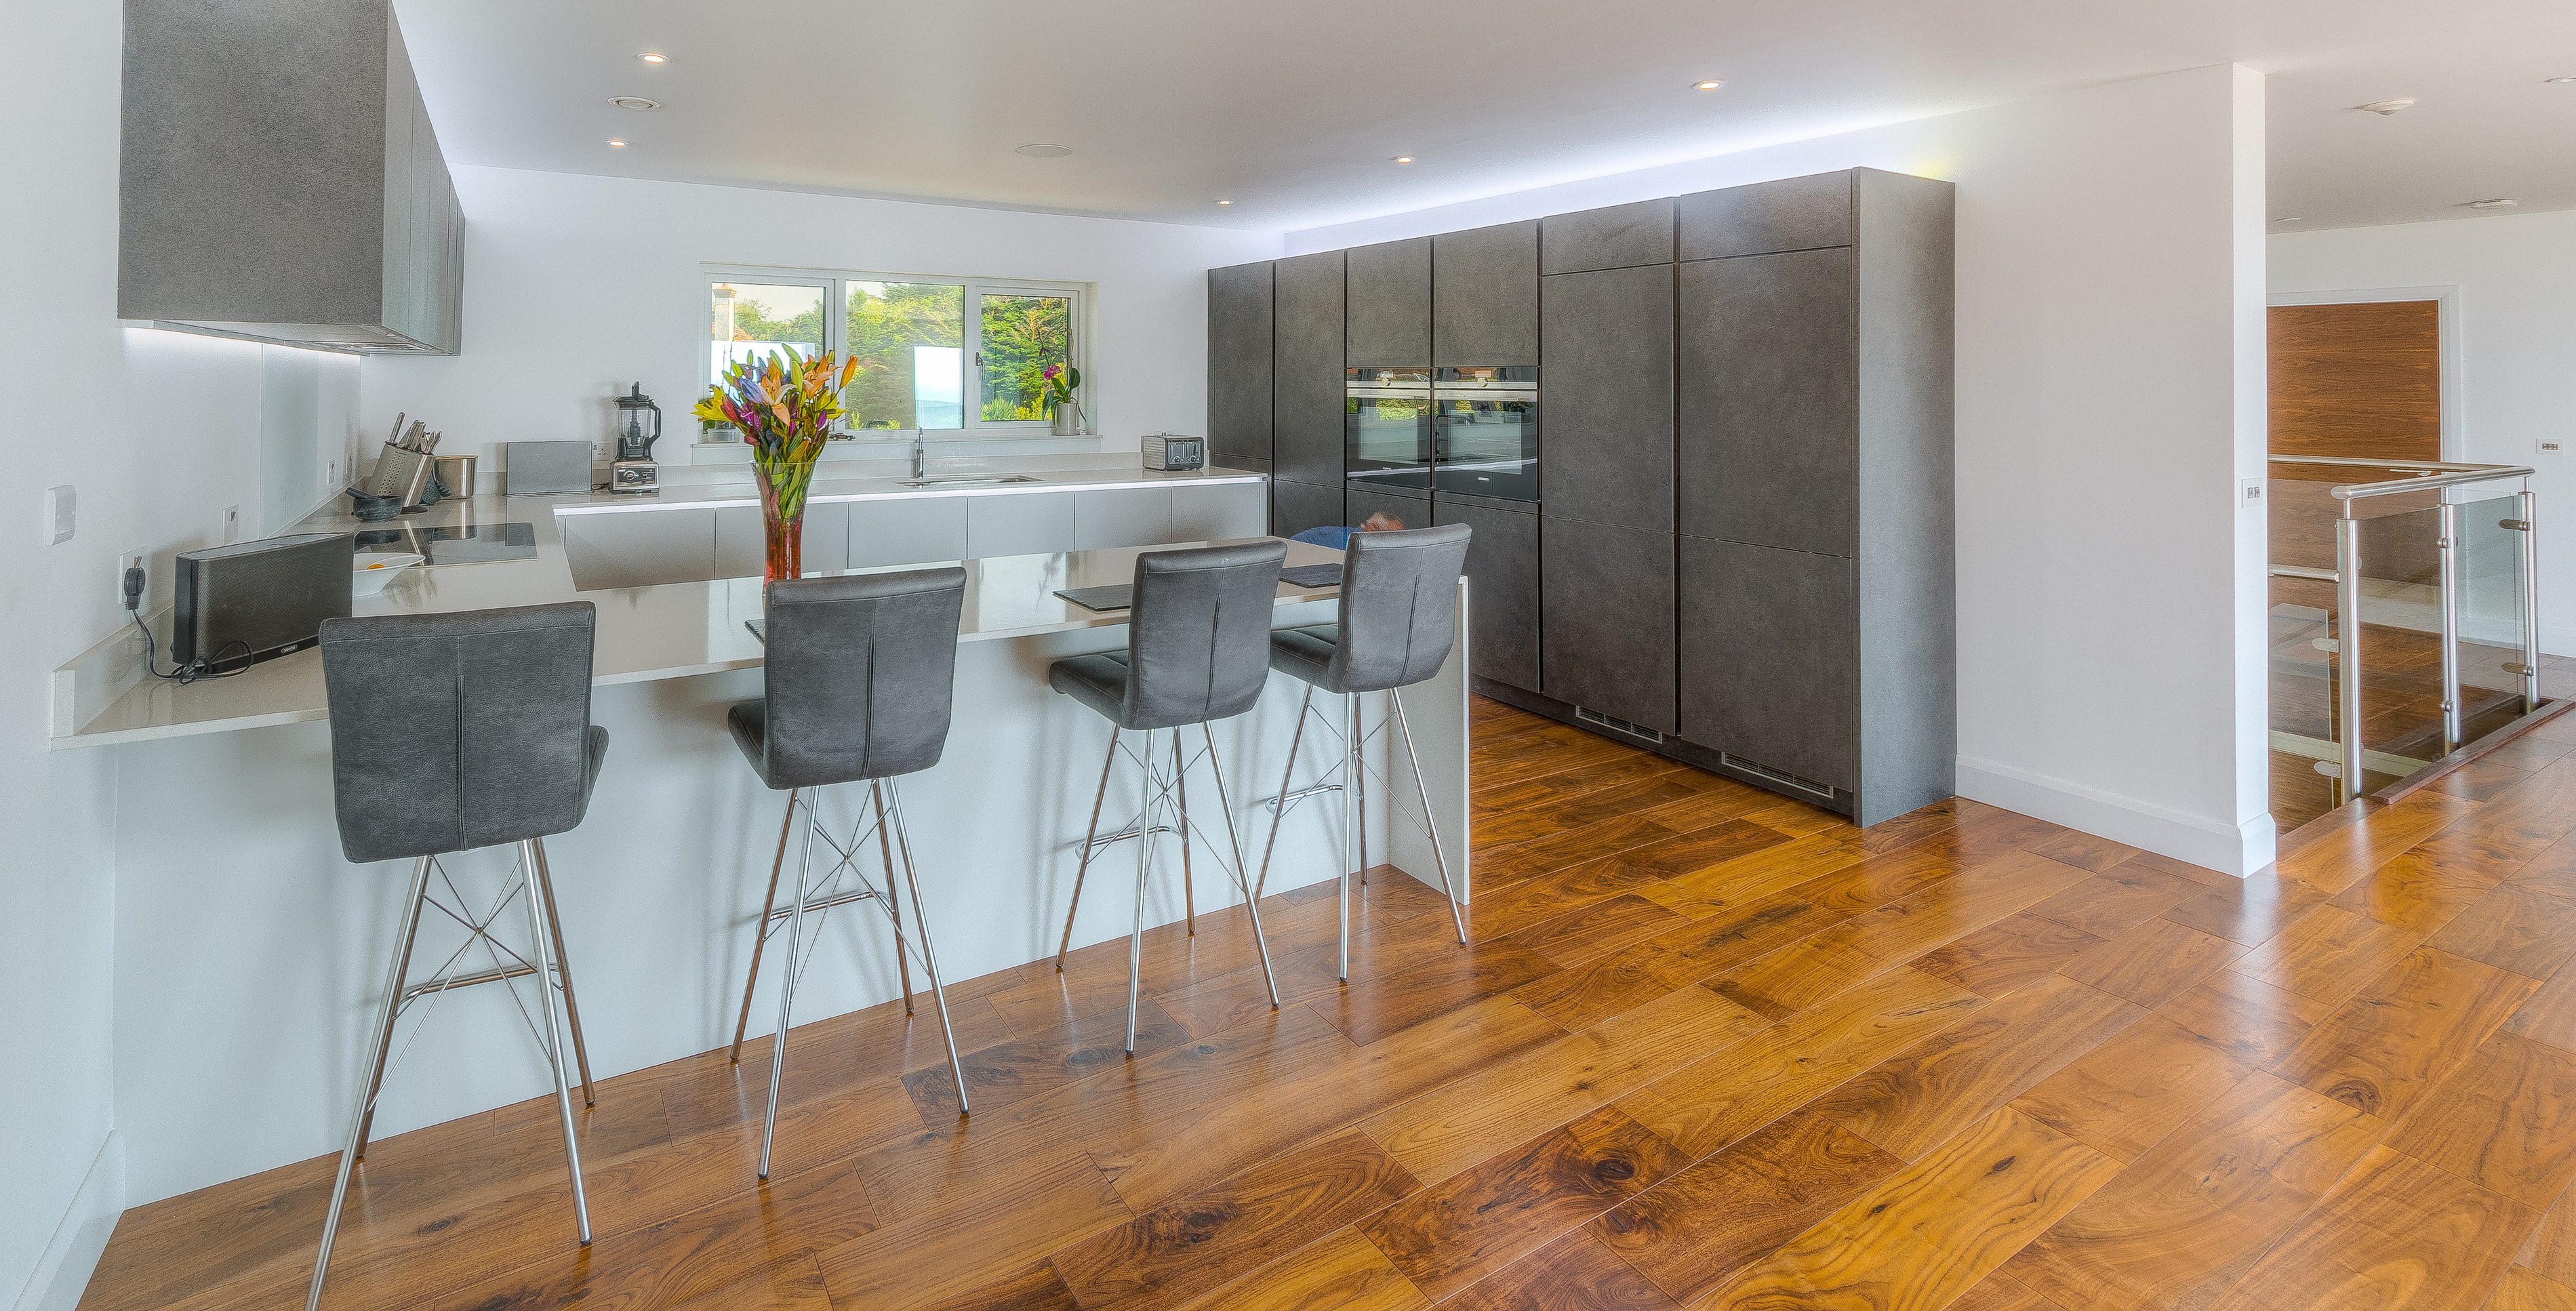 Alno Kitchens Alno Kitchens Image Directory Ahouse